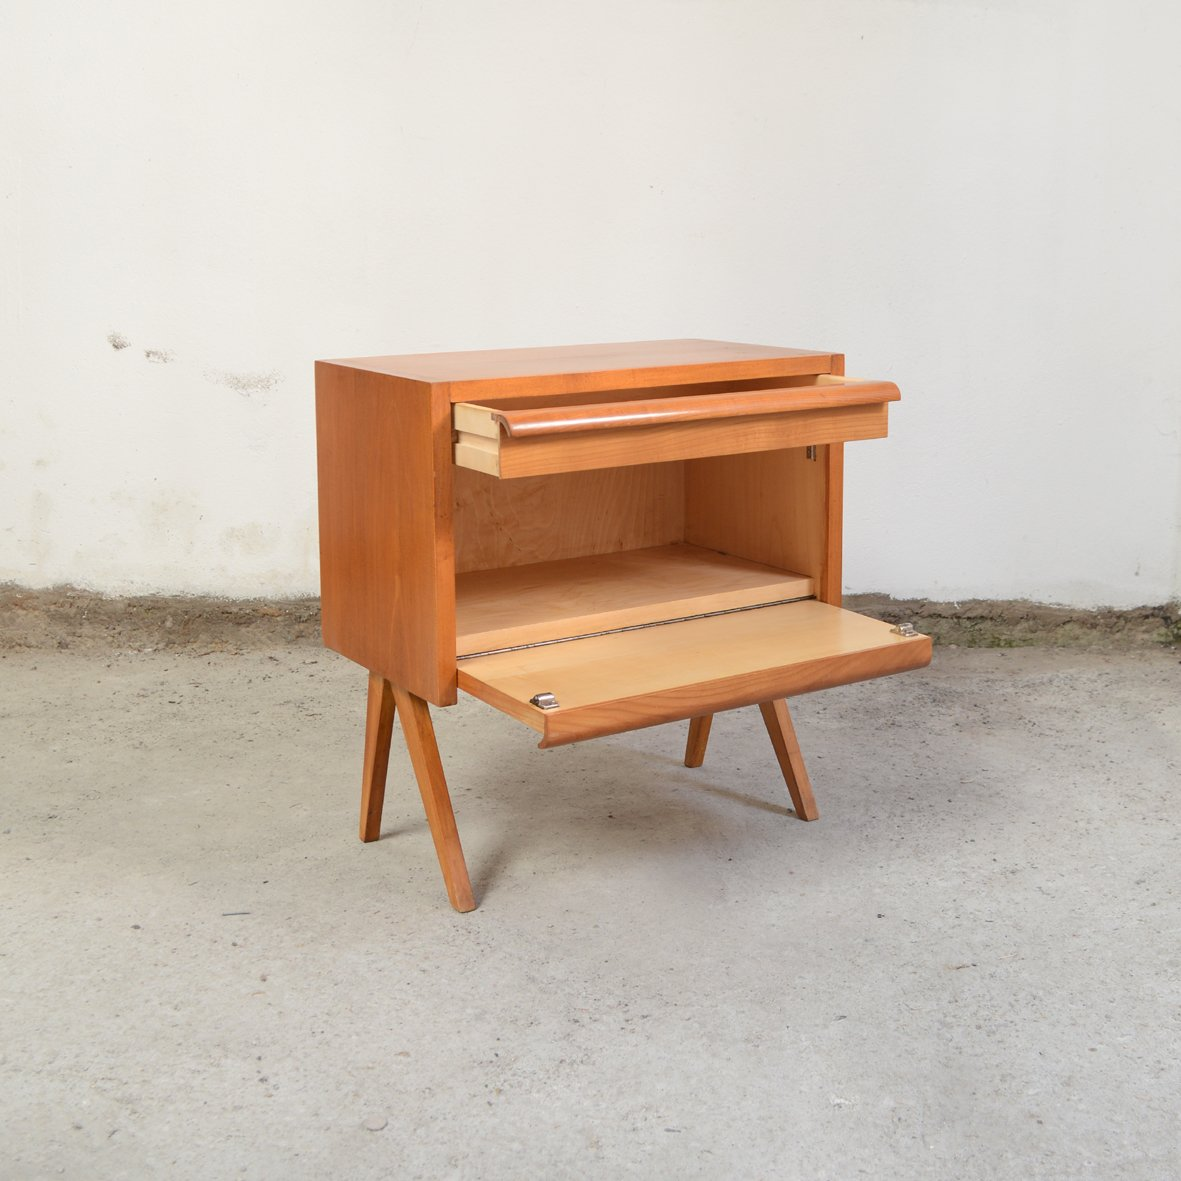 Small Wooden Cabinet with Compass Feet, 1960s for sale at Pamono